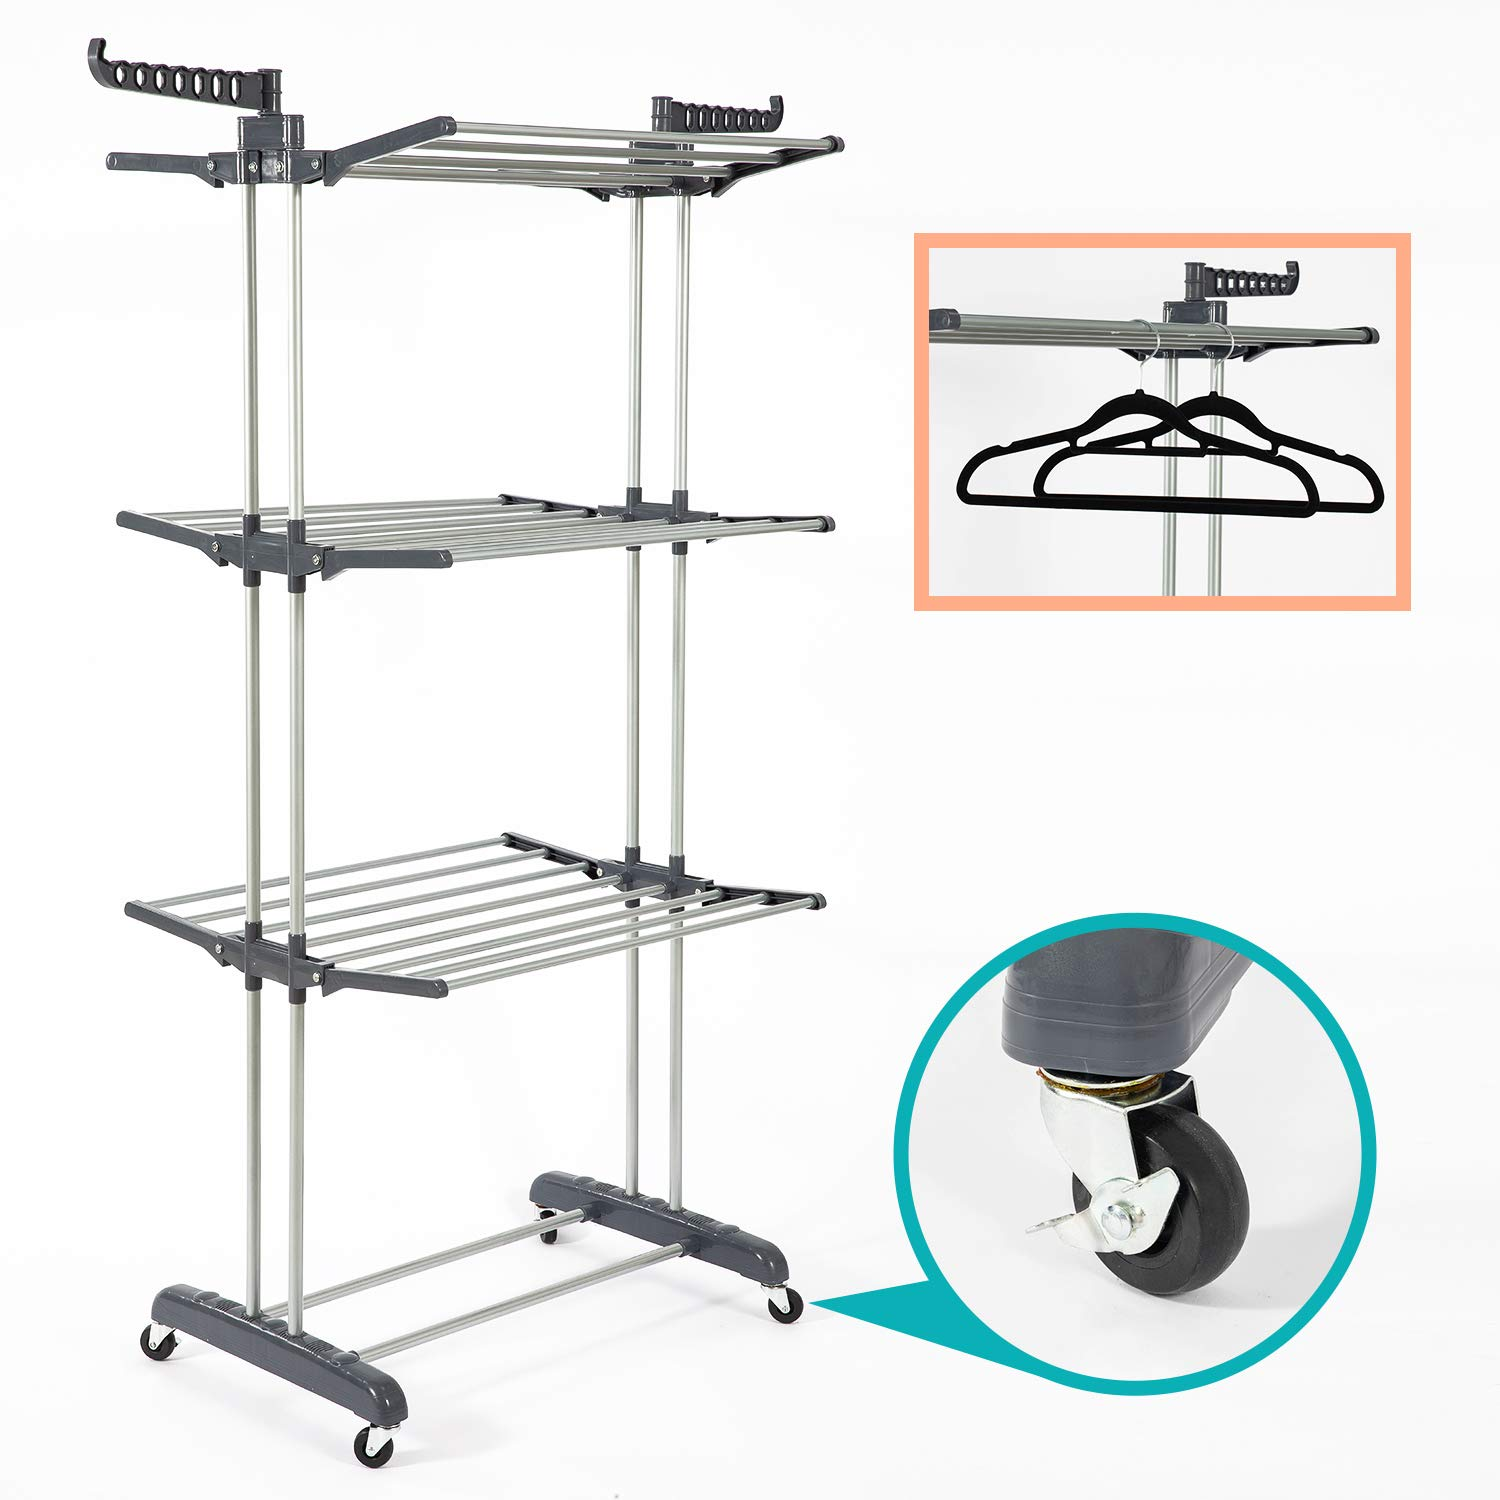 SUPJOO Clothes Drying Rack